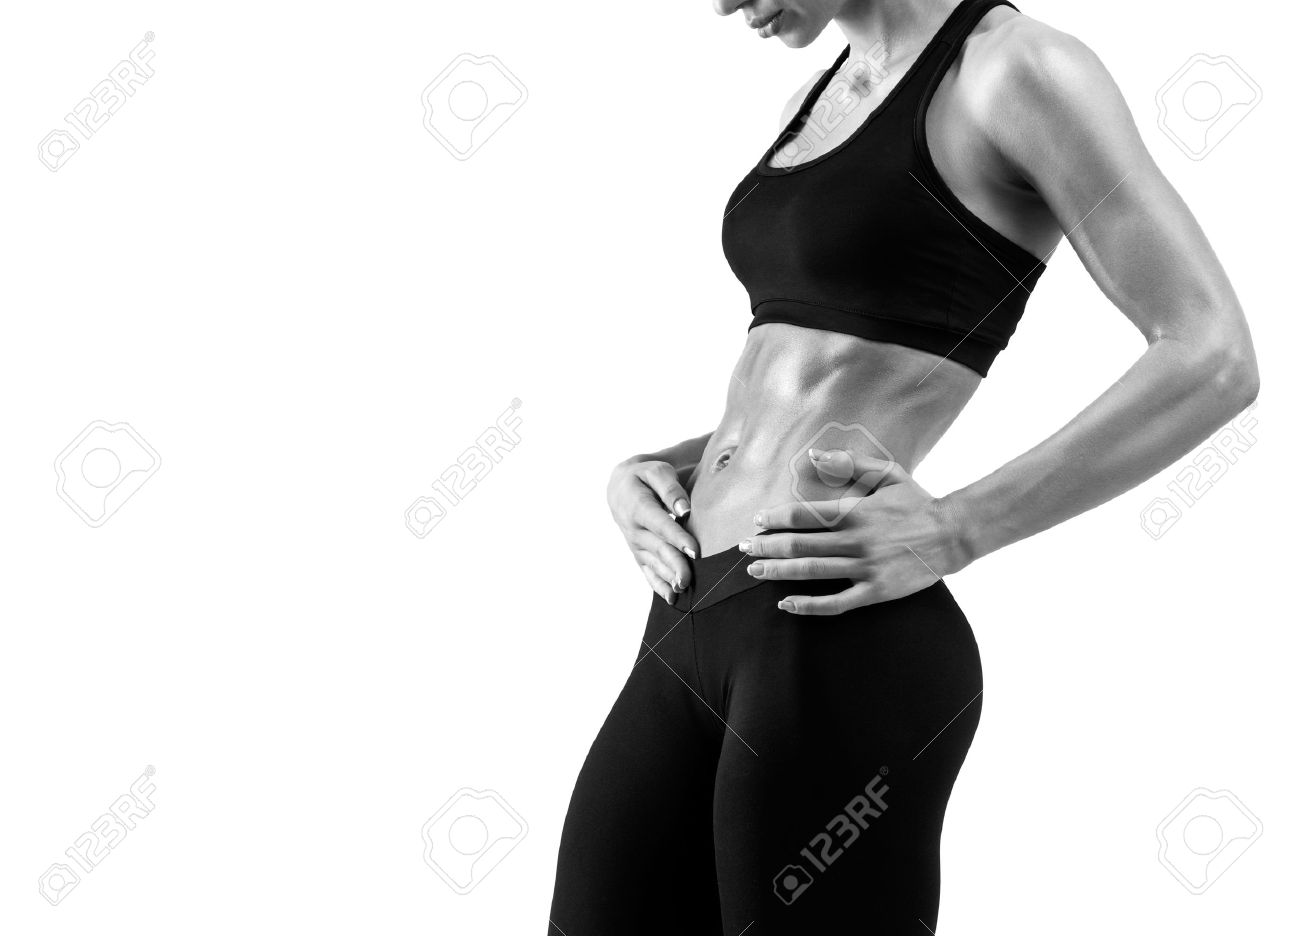 Fitness sporty woman showing her well trained body isolated on white background. Strong abs showing. Black and white photo with copyspace for text. Standard-Bild - 41423854